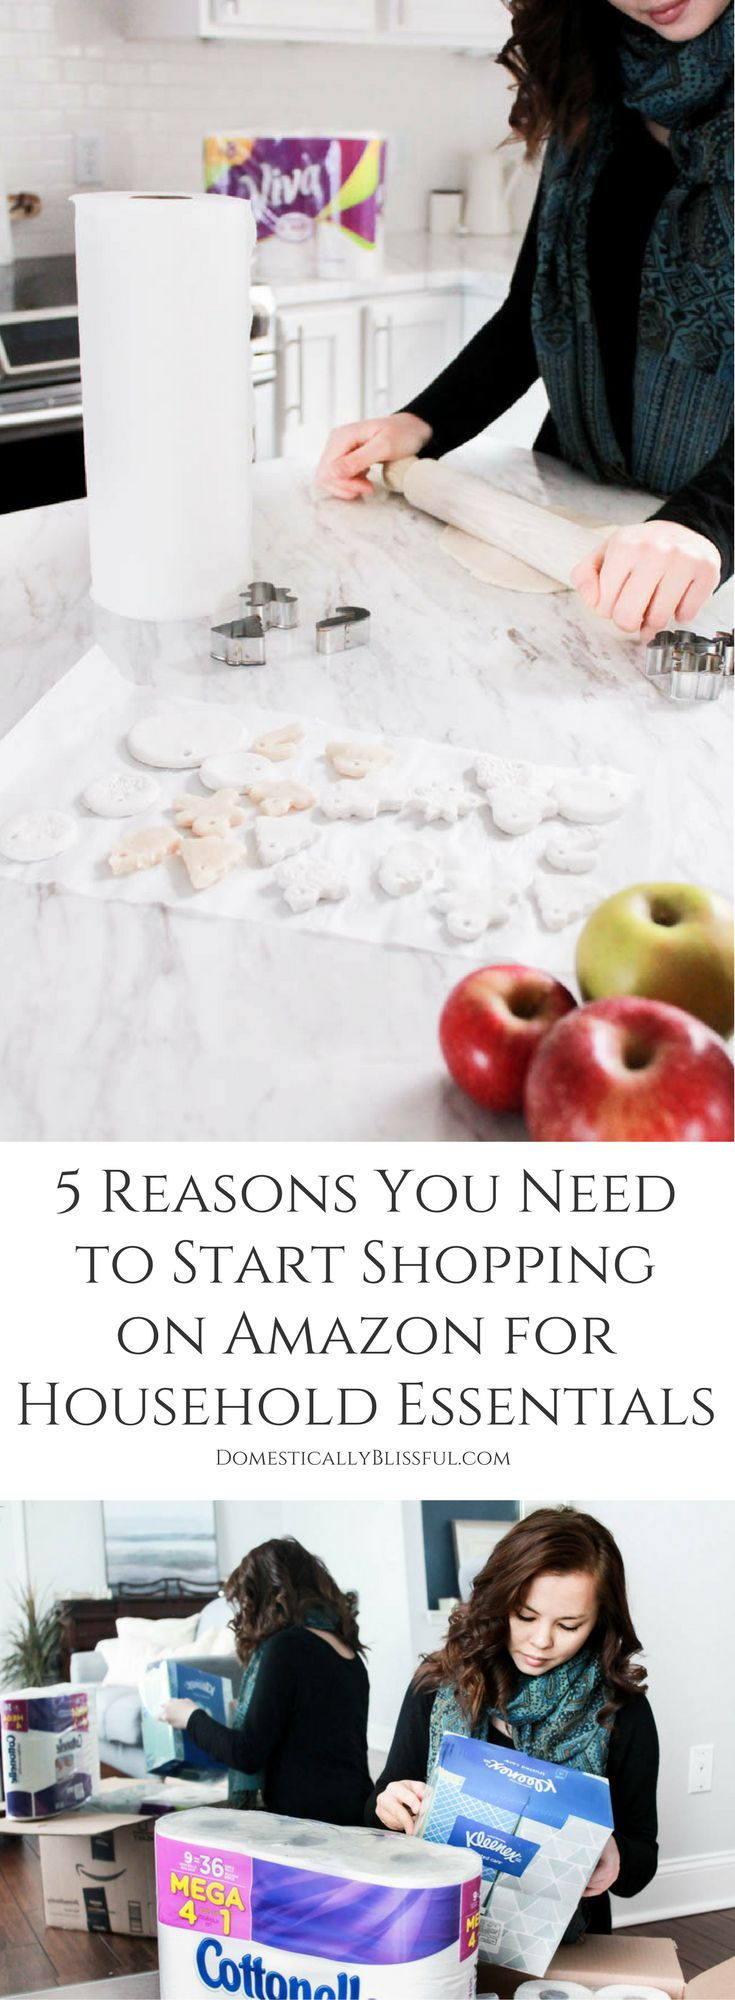 Ad: 5 reasons you need to start shopping on Amazon for household essentials that will save you time, money, & so much more!| #ad #HeartYourPlanet @VivaTowels @Kleenex @Cottonelle  @scottproducts | Amazon shopping | Amazon coupon | 15% off with Subscribe & Save | WWF | responsible forestry | forest | holiday shopping | online shopping | shopping online for the holidays | World Wildlife Fund |